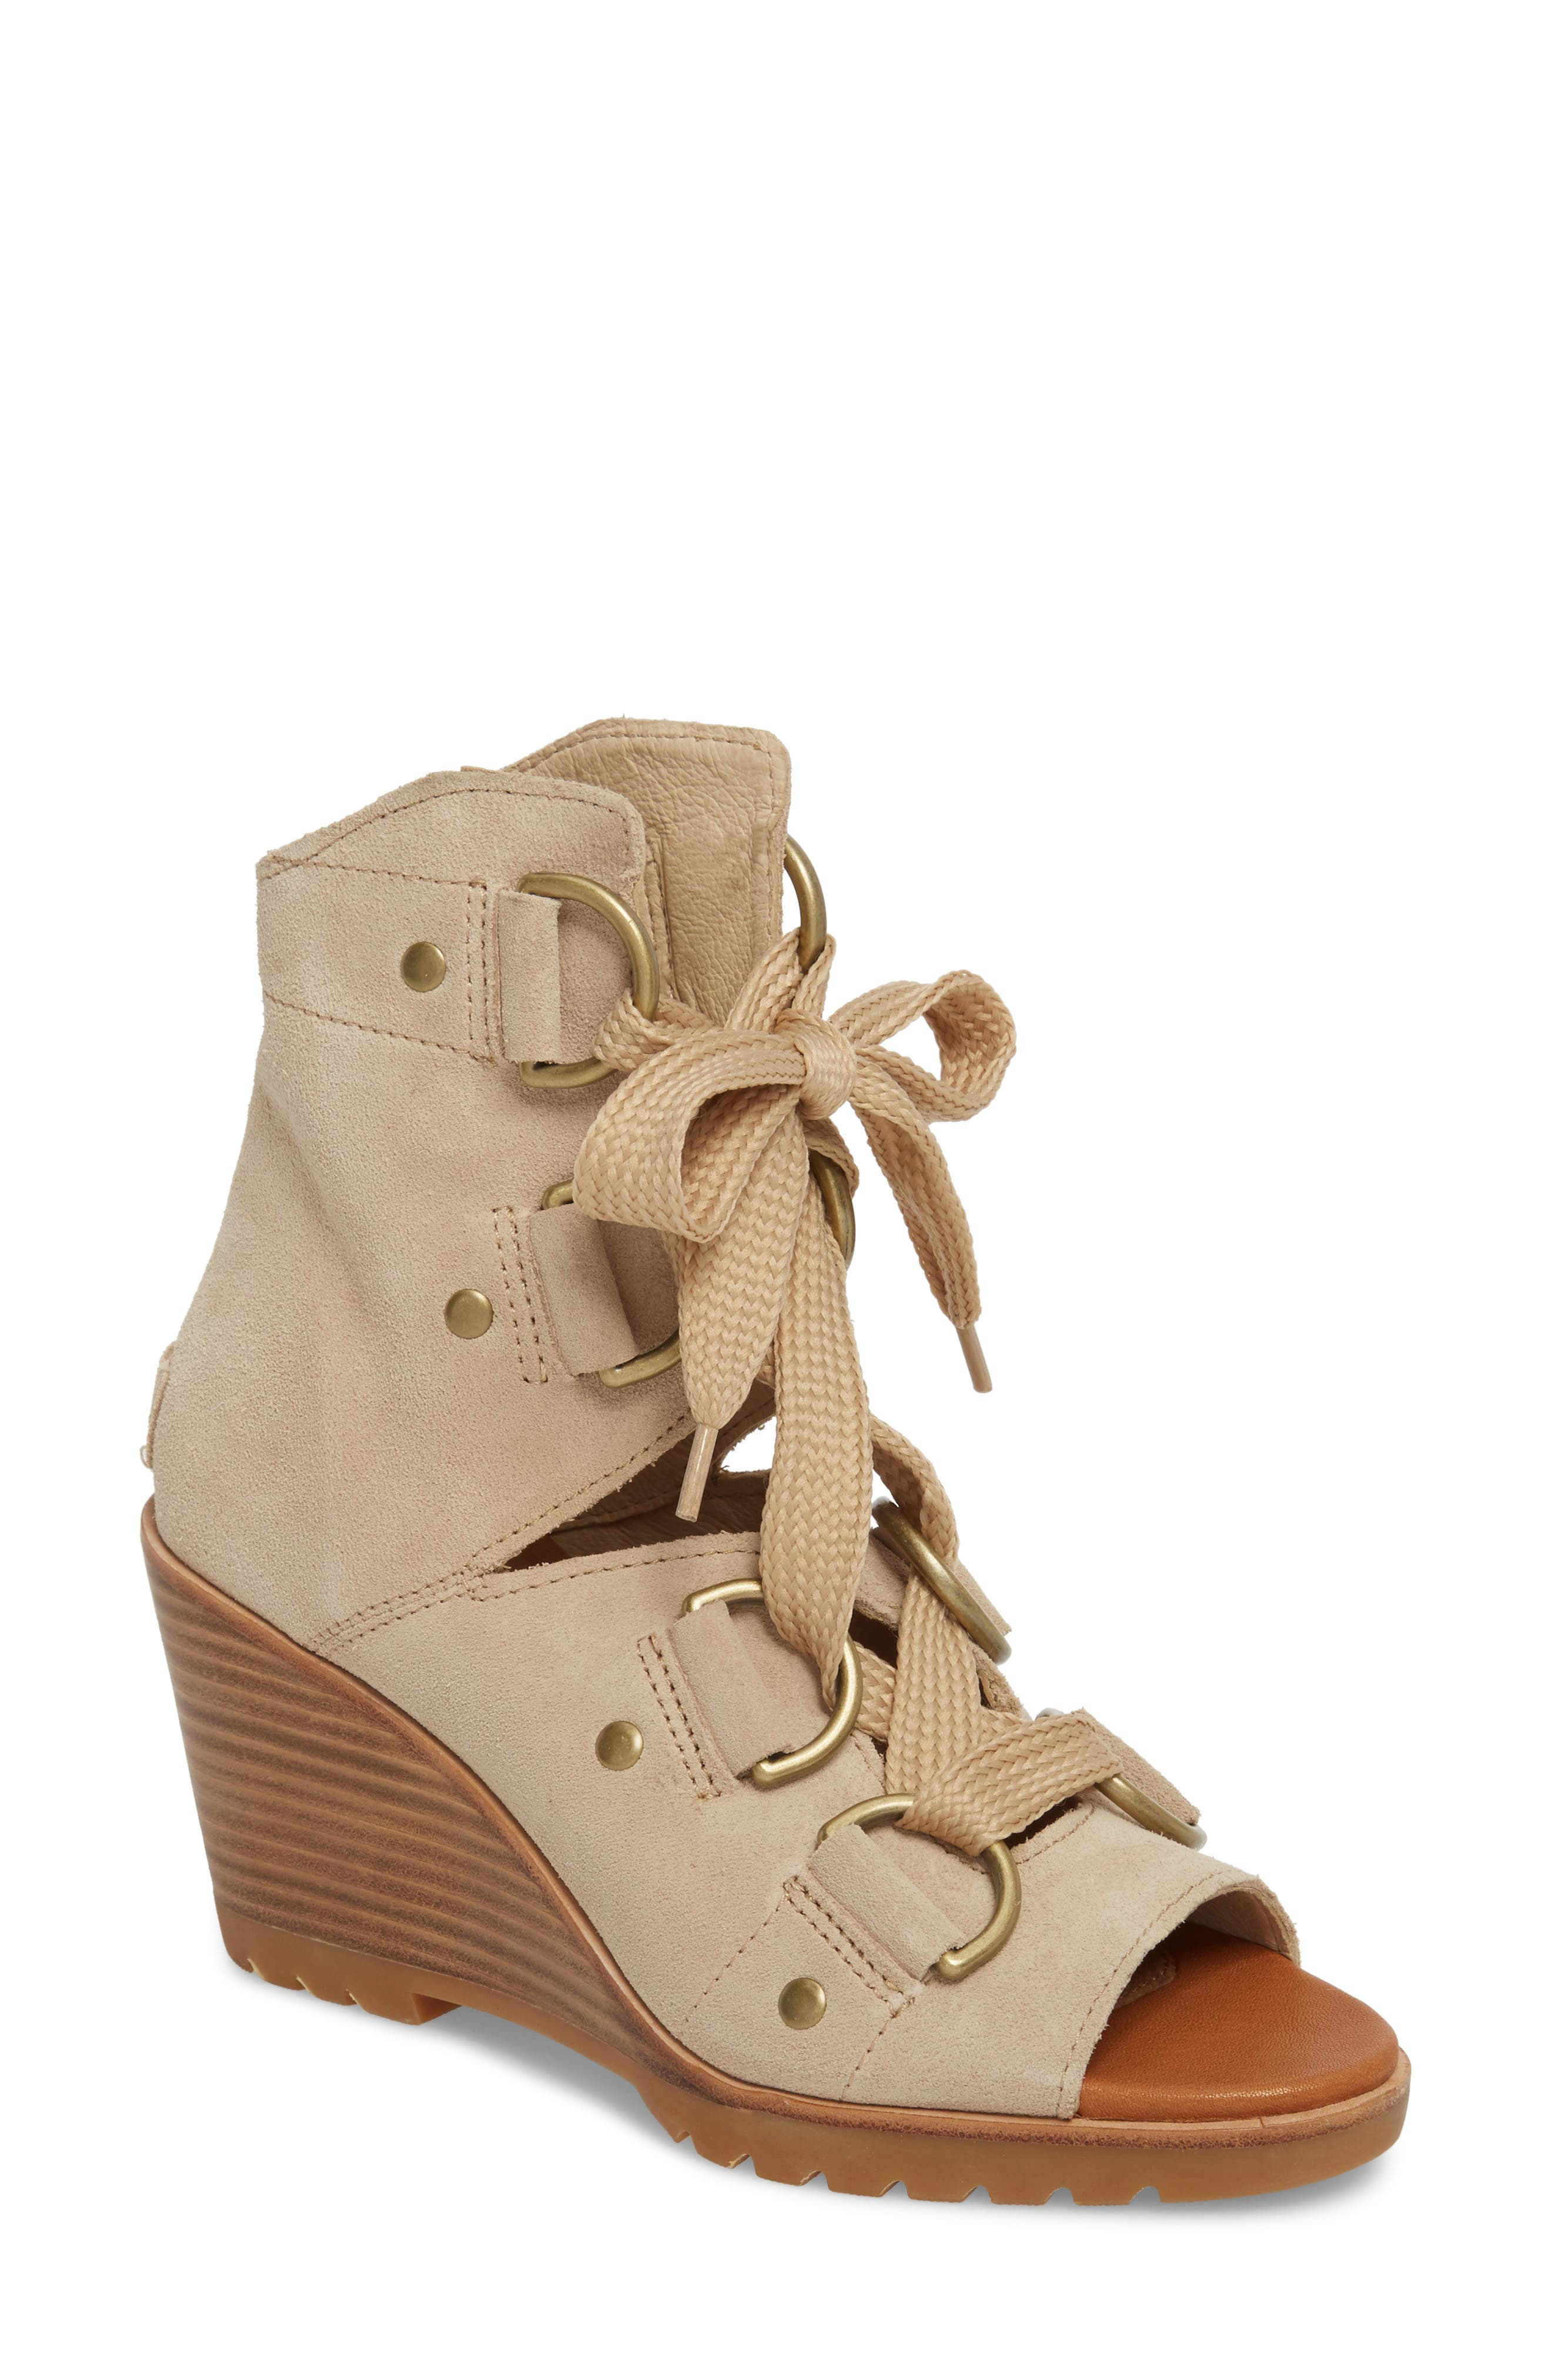 After Hours Wedge Bootie,                         Main,                         color,